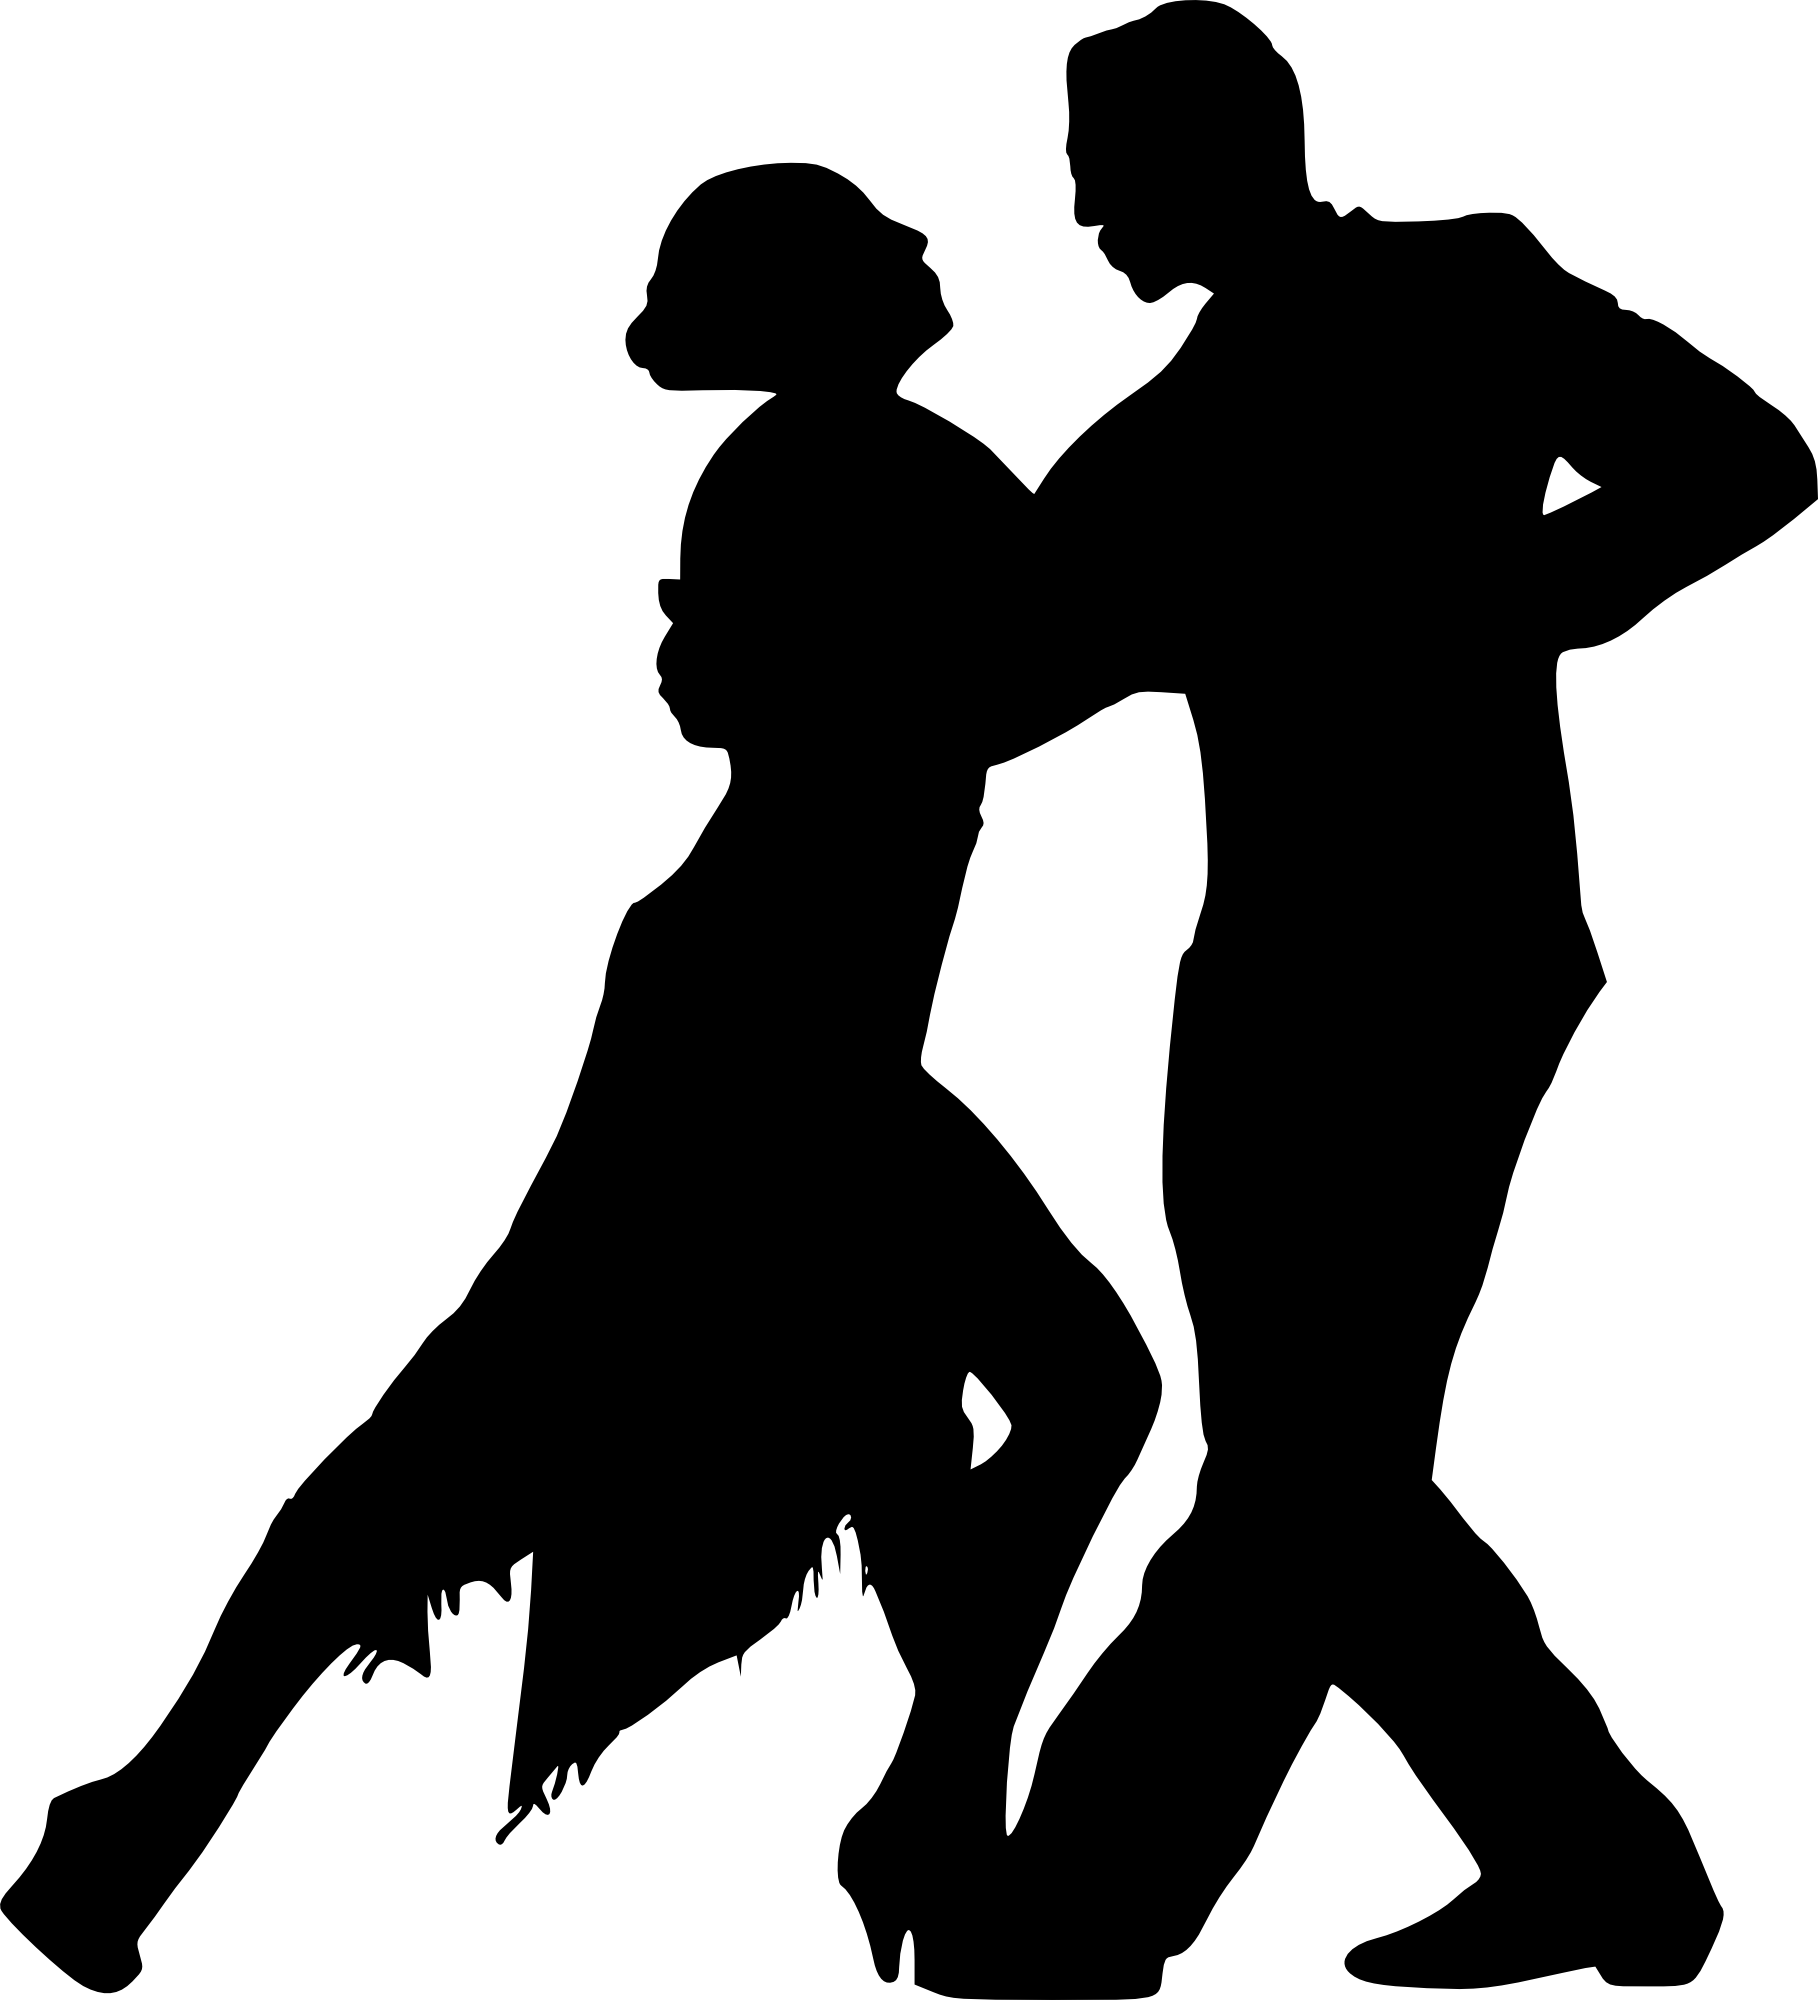 Dance couple png. Dancing silhouette transparent